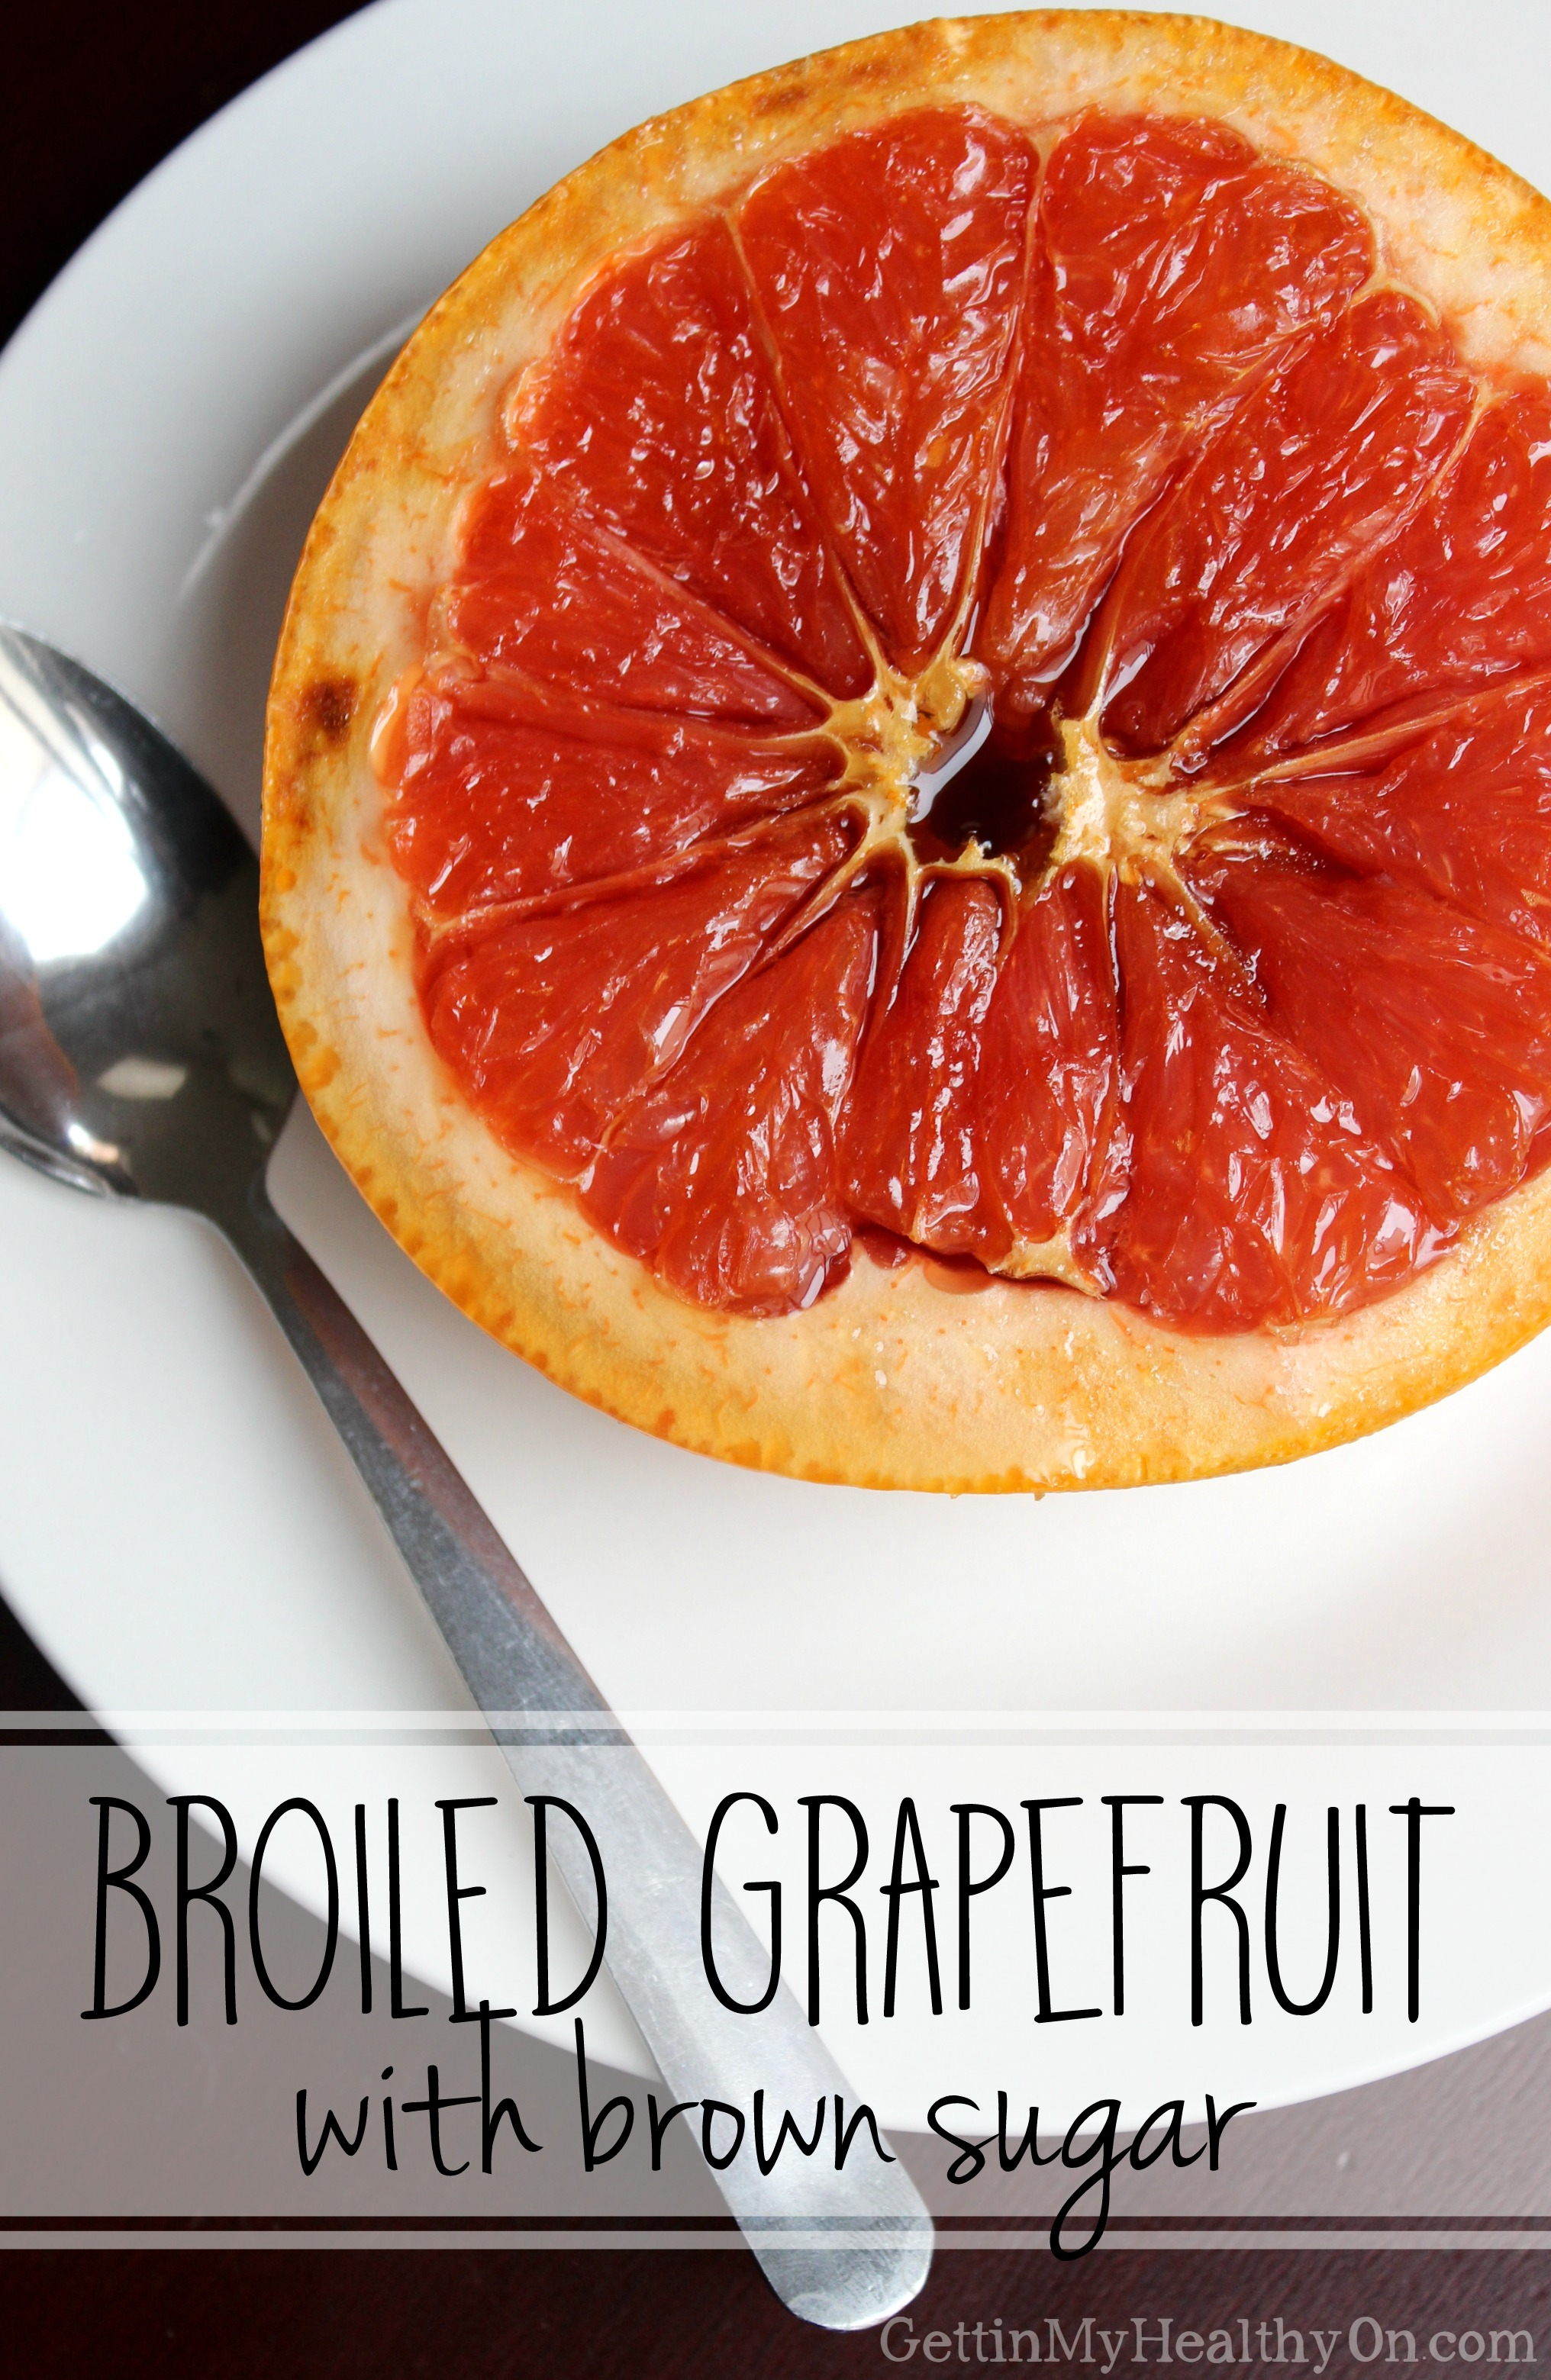 Broiled Grapefruit with Brown Sugar